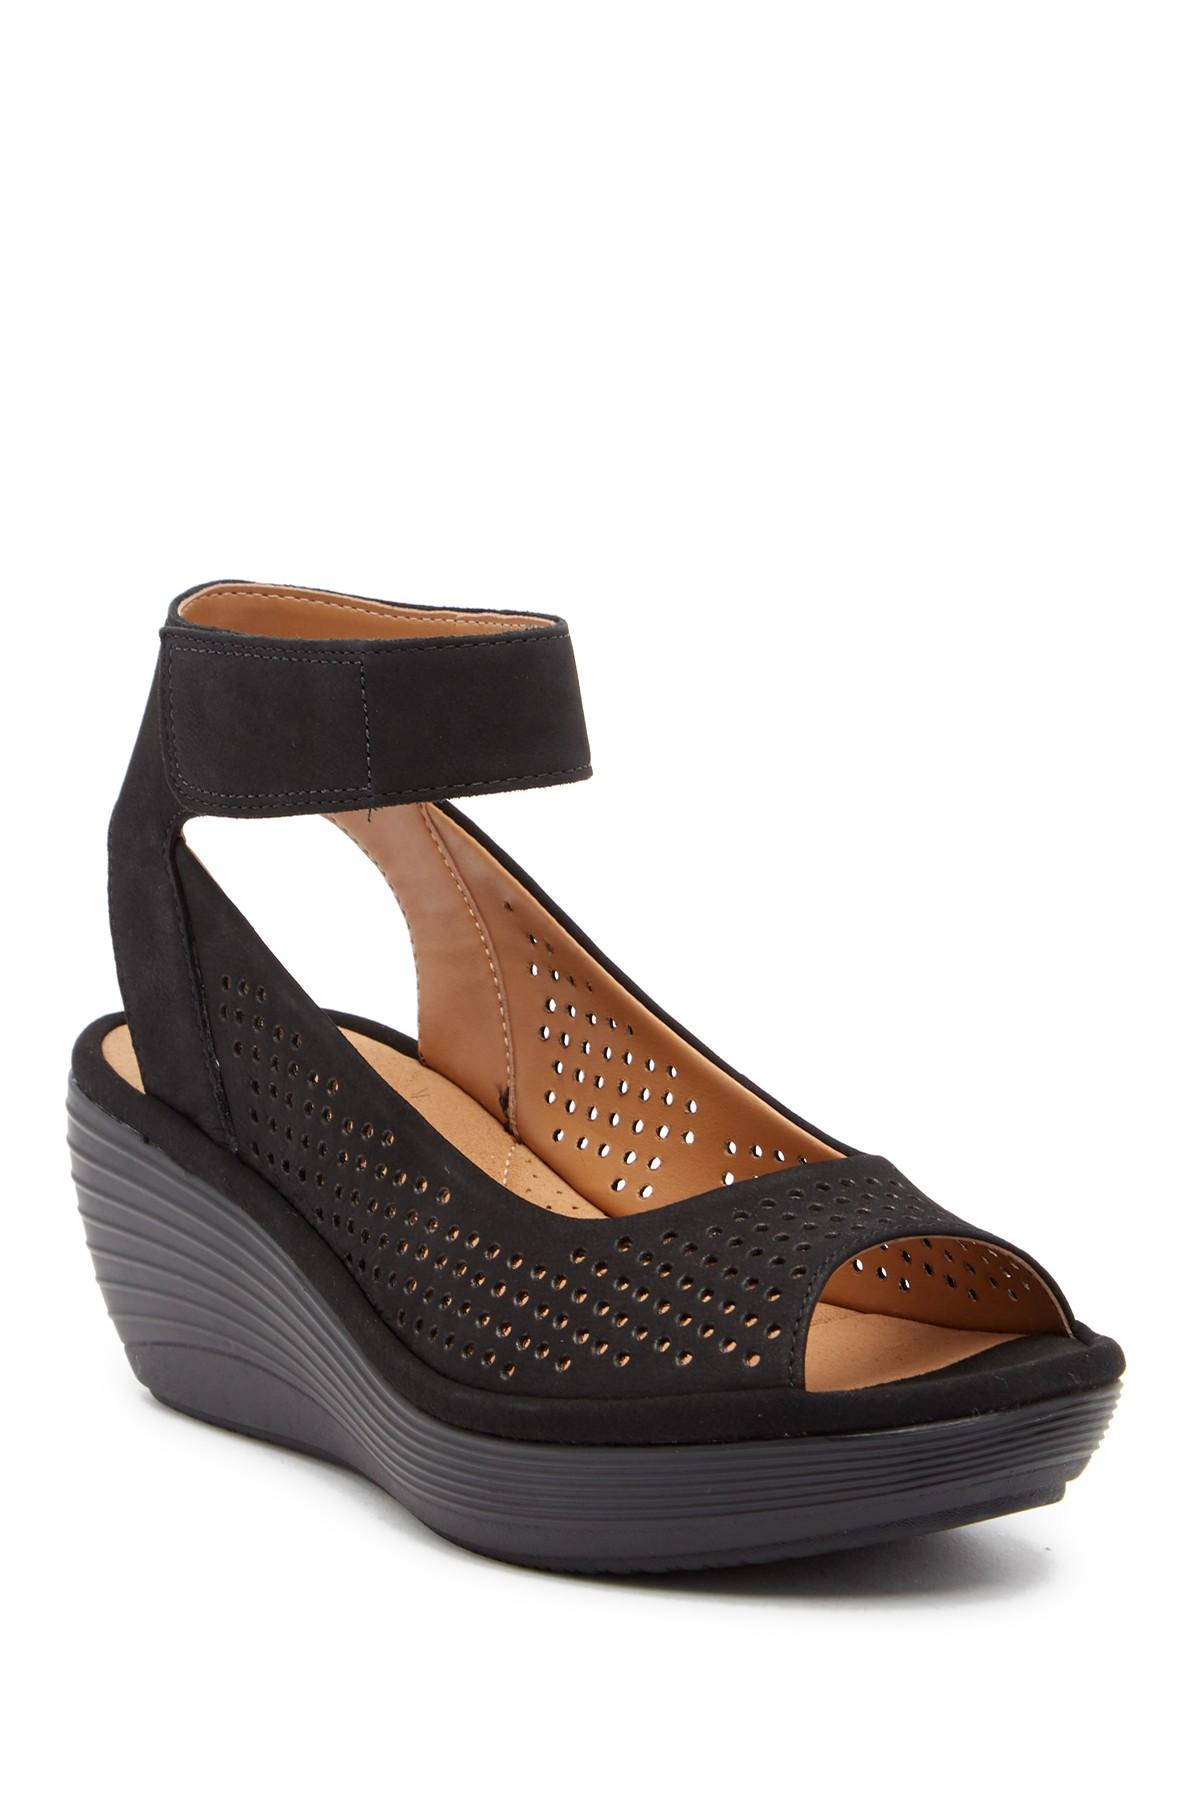 5bd5eca3a70 Lyst - Clarks Reedly Salene Wedge Sandal - Wide Width Available in Black